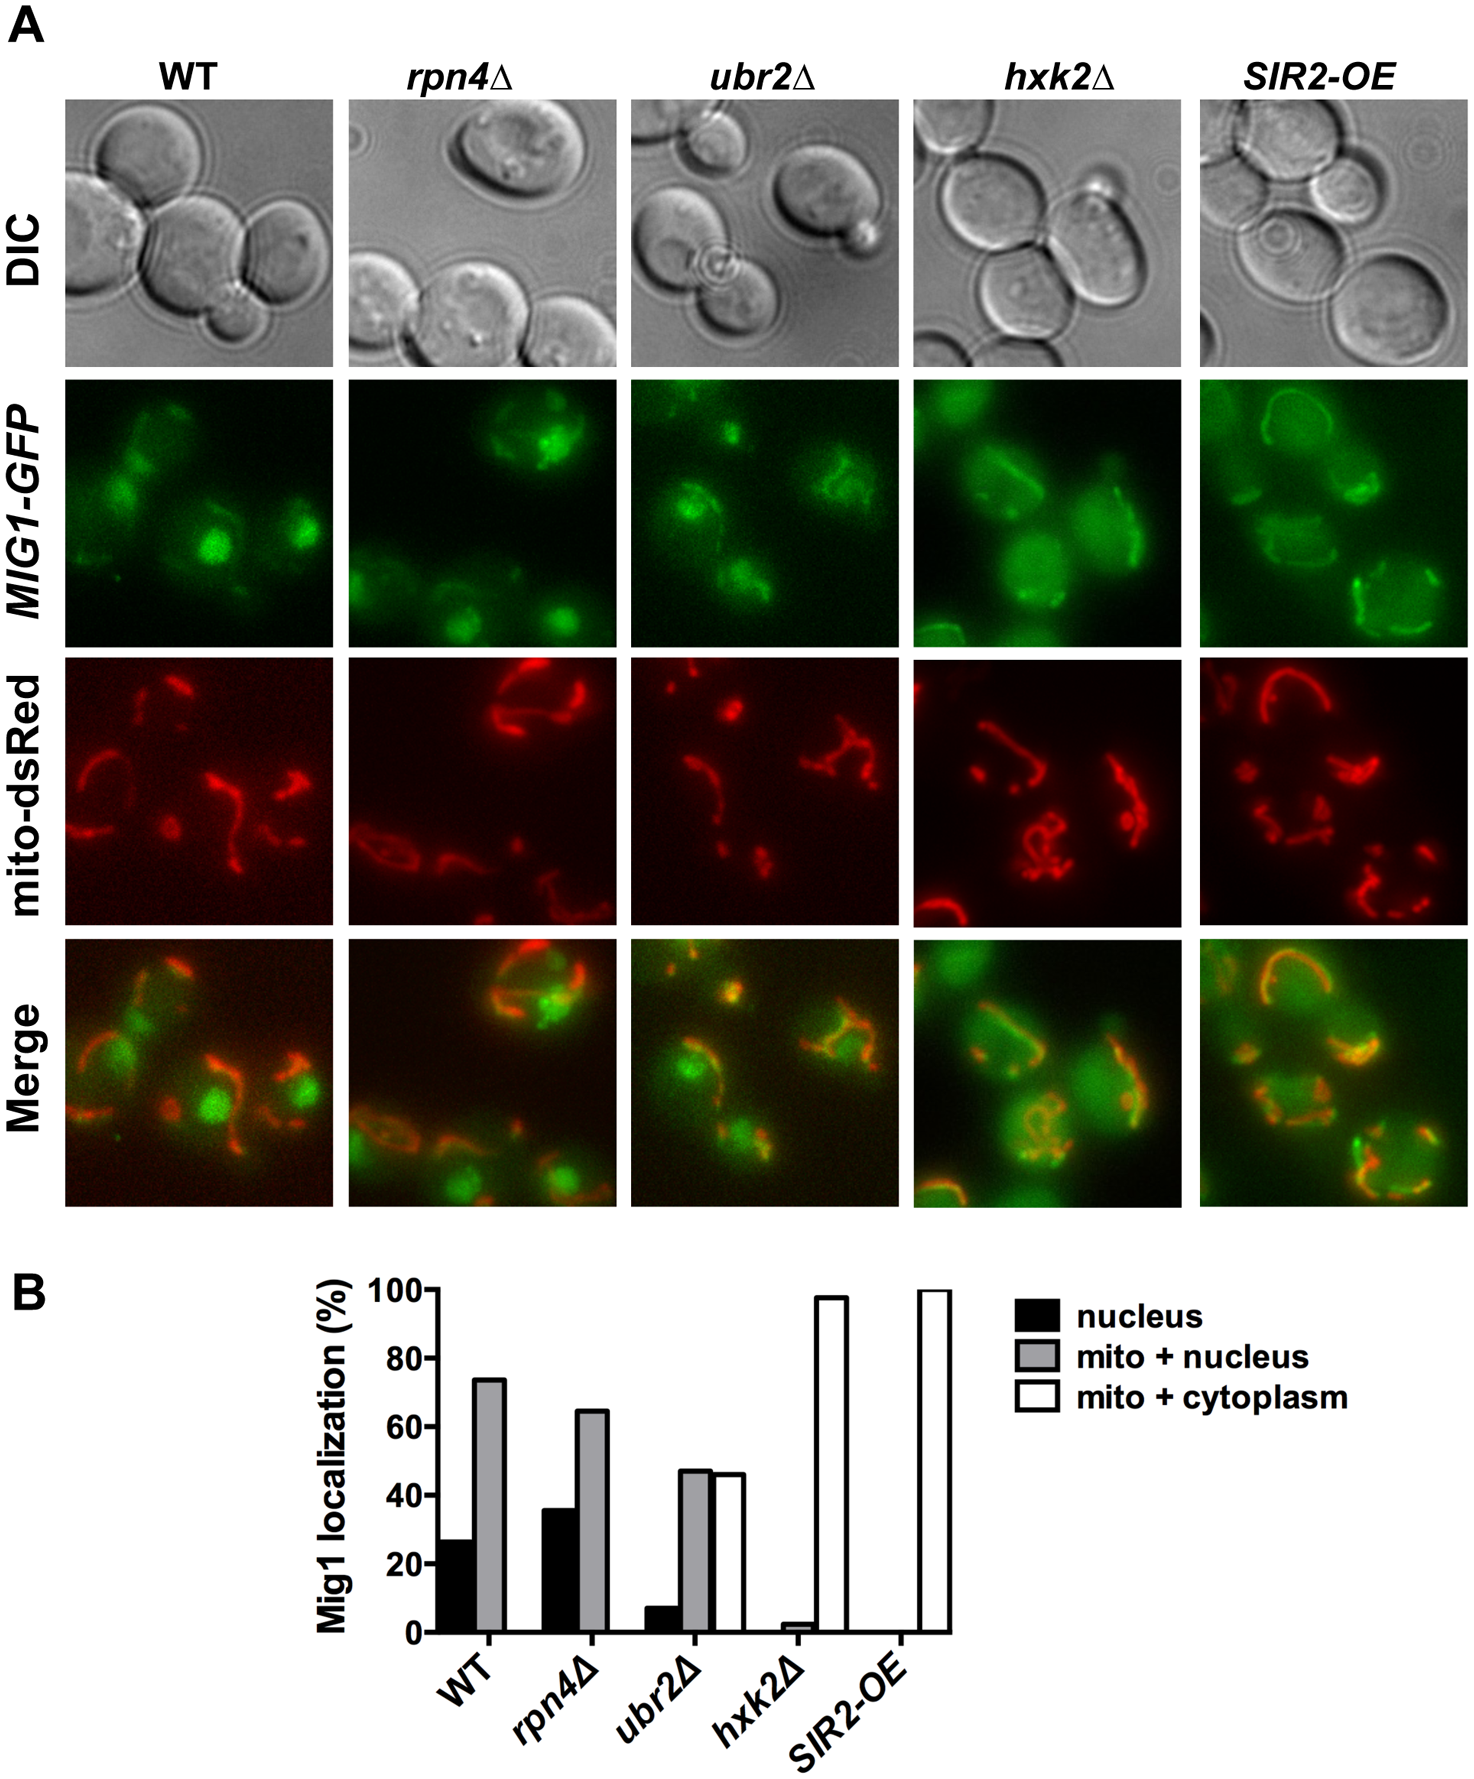 Mig1 co-localizes with the mitochondria in cells with increased proteasome abundance, in the absence of <i>HXK2</i> and upon overexpression of <i>SIR2</i>.